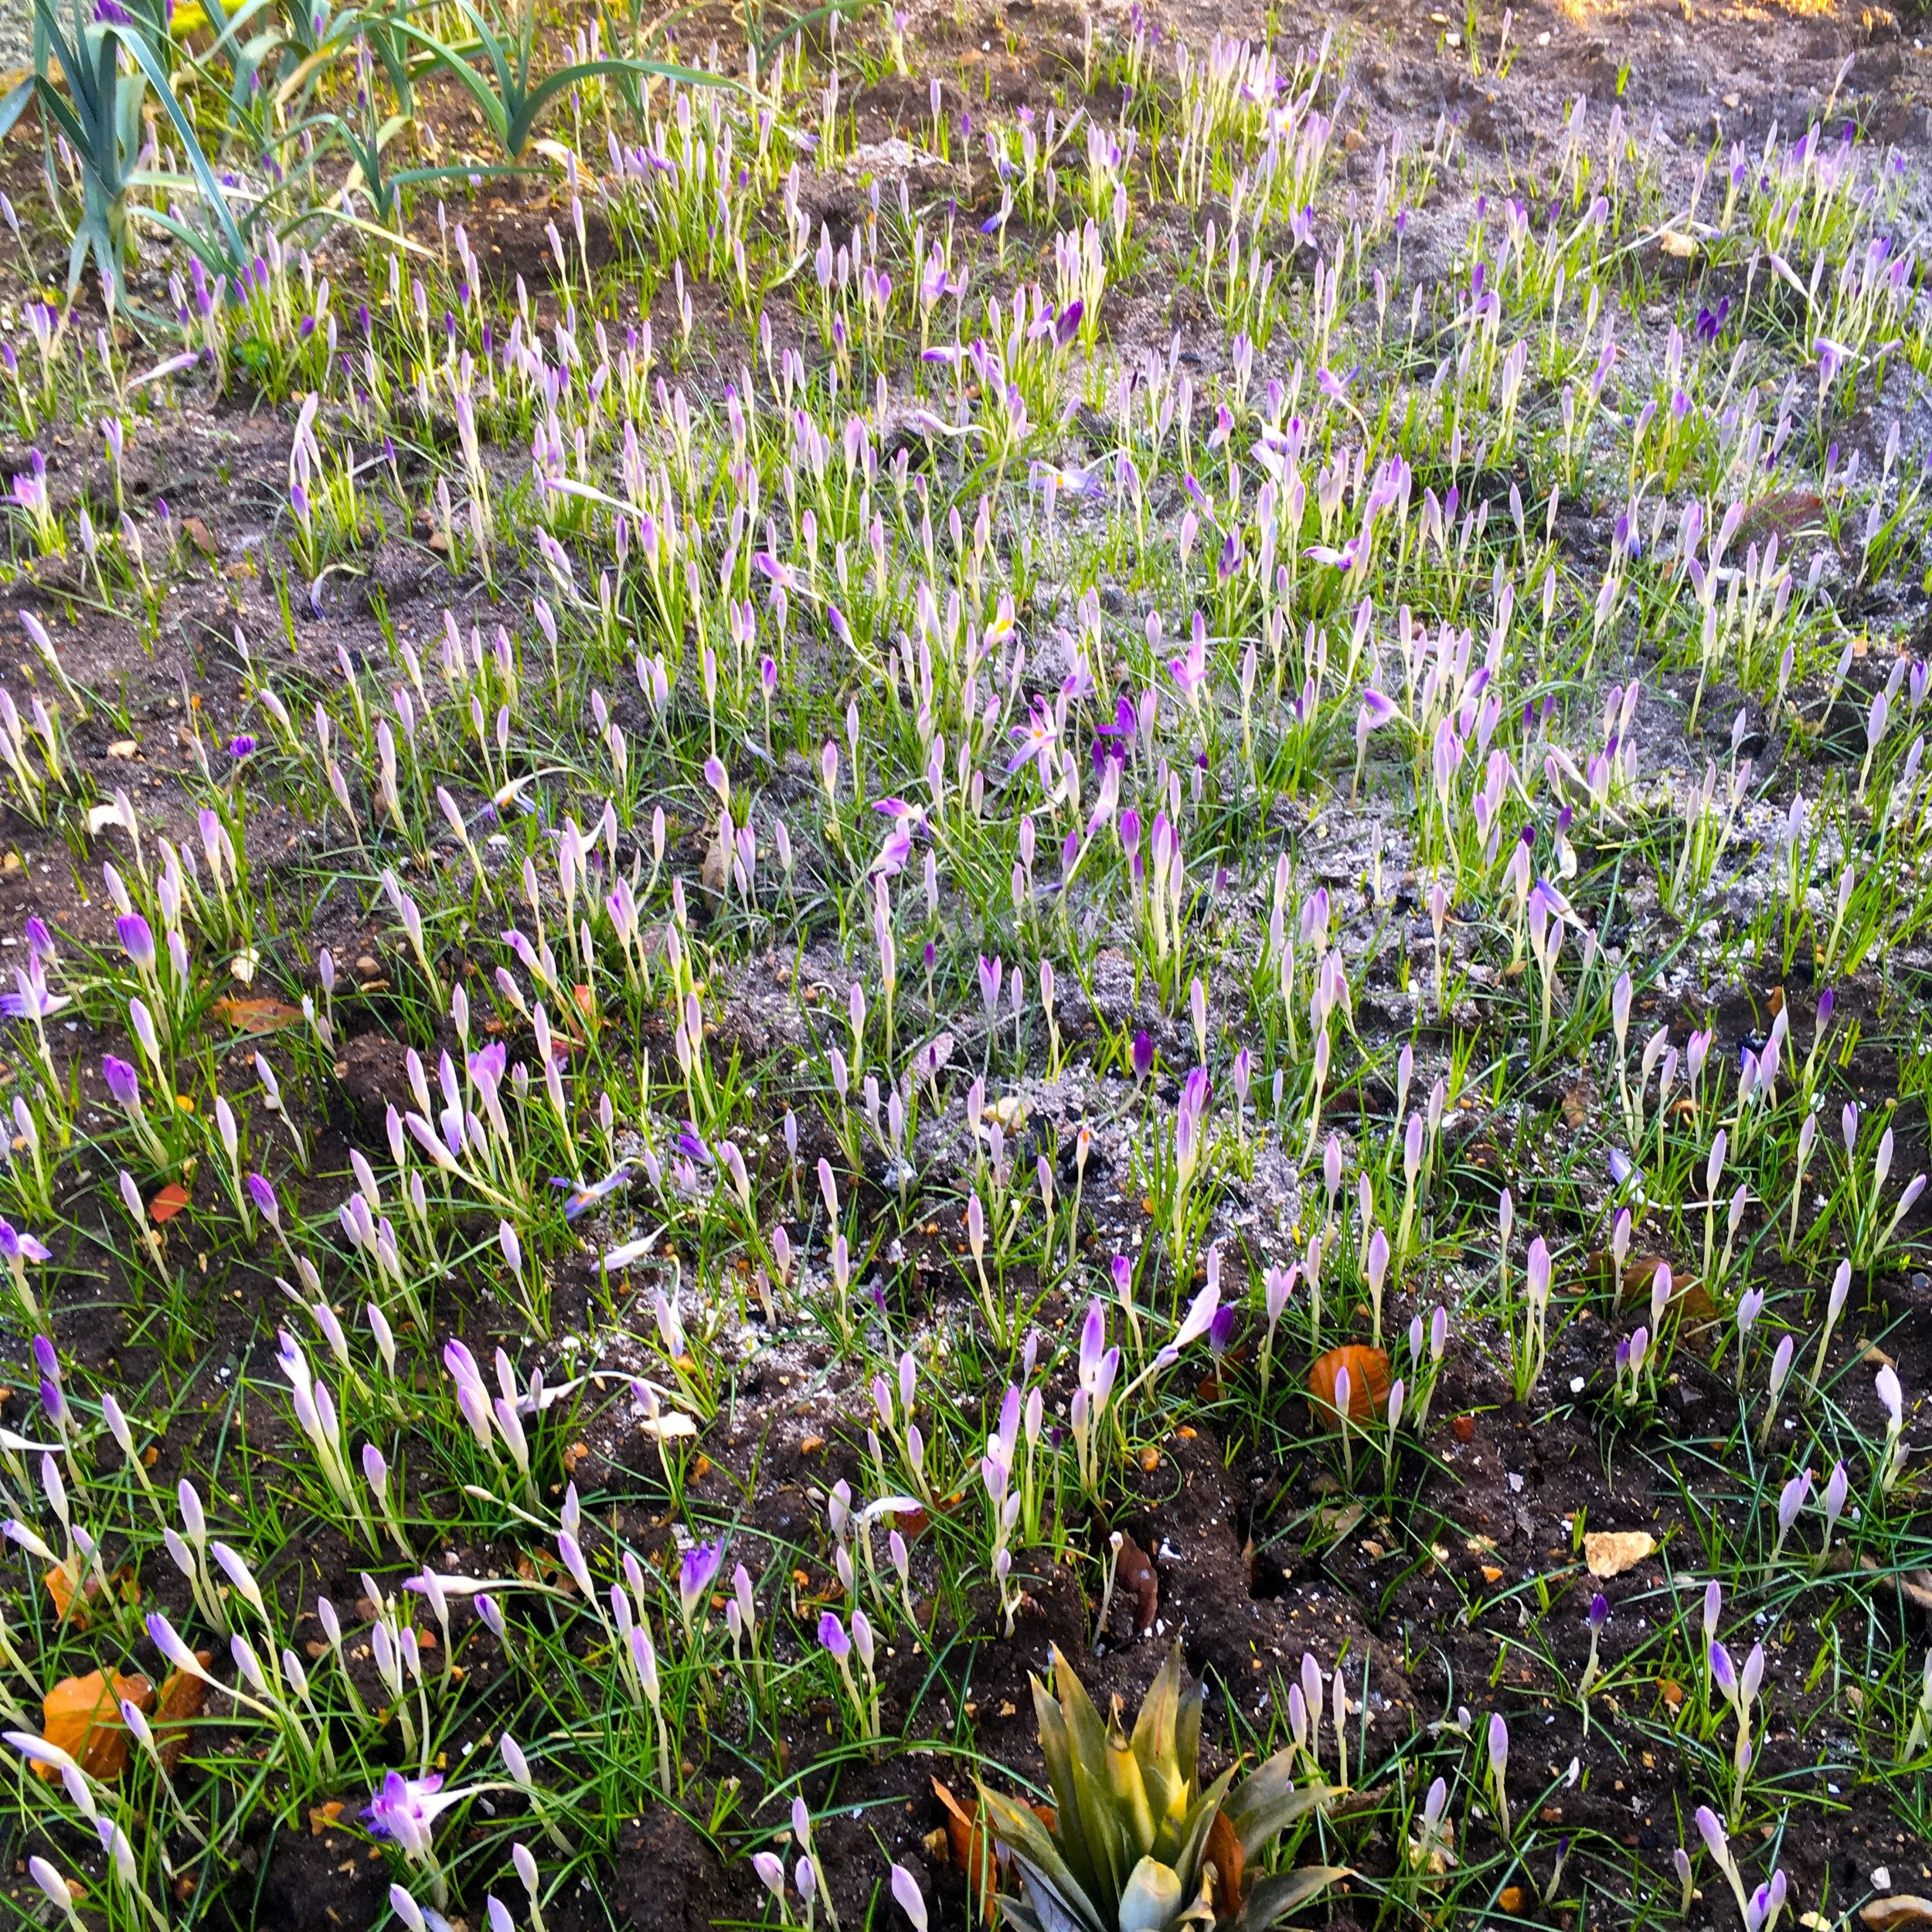 a carpet of crocuses